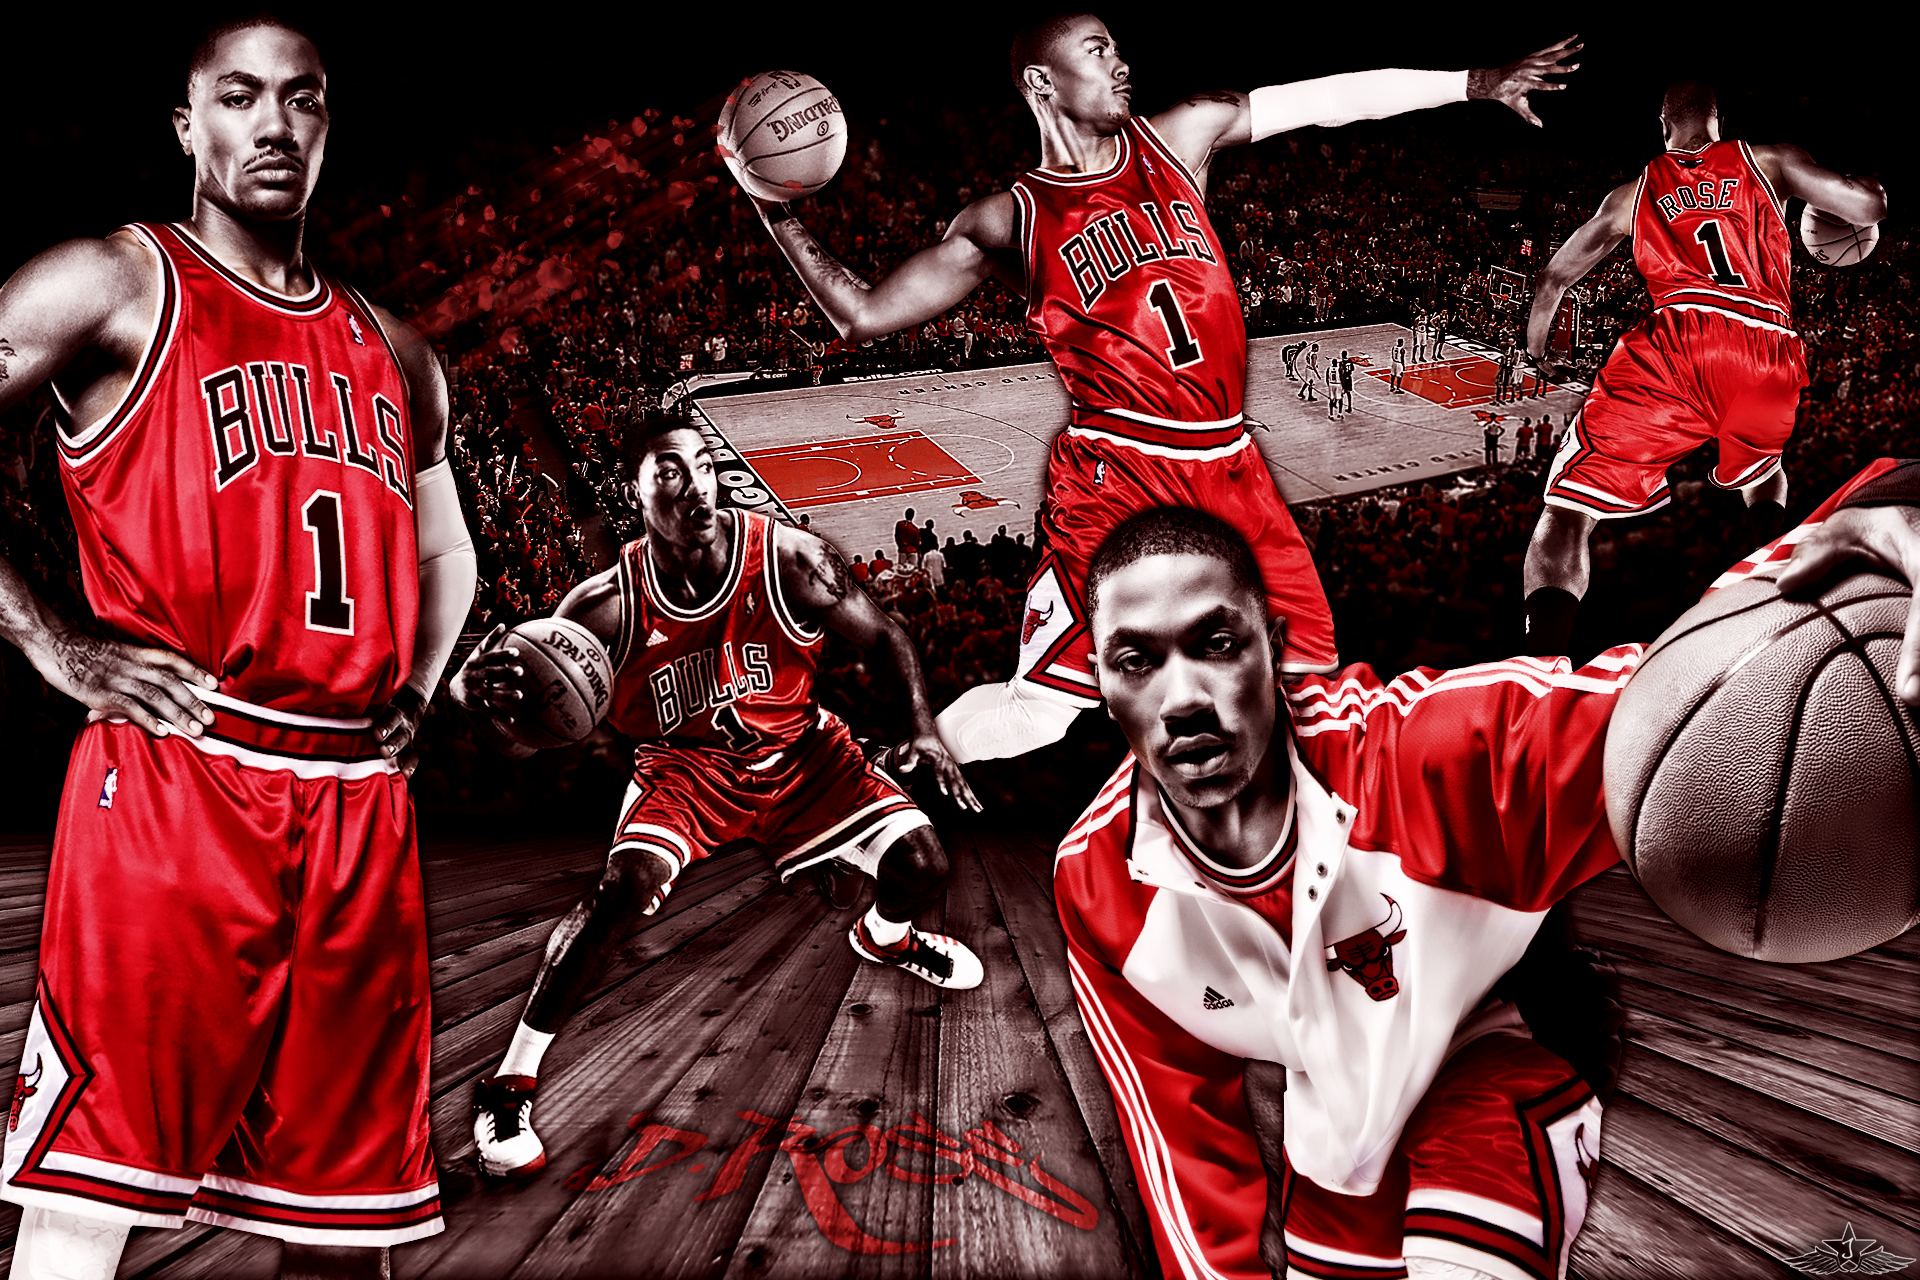 HQ] Wallpaper Derrick Rose of Chicago Bulls 1920x by ArtworkByJayRay 1920x1280